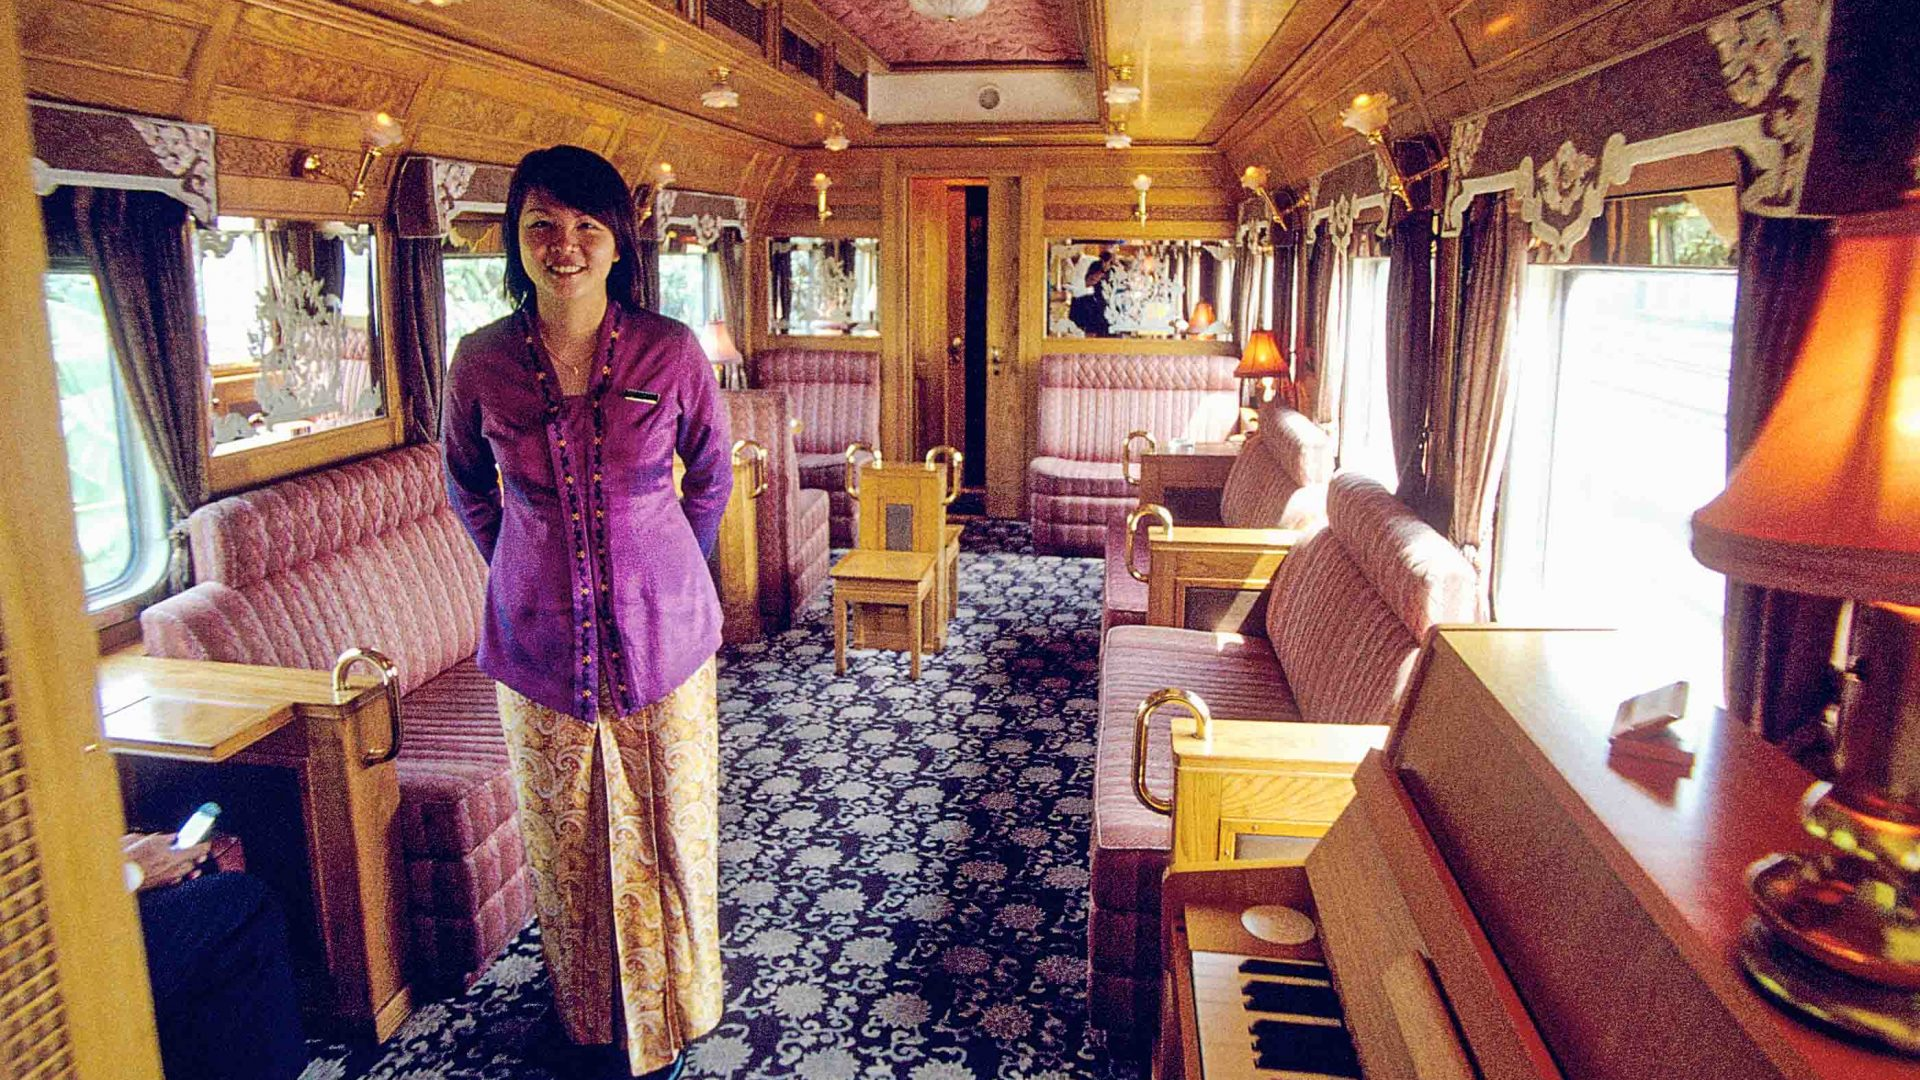 An employee smiles for the cameras on the luxurious Eastern and Oriental Express train in Thailand.